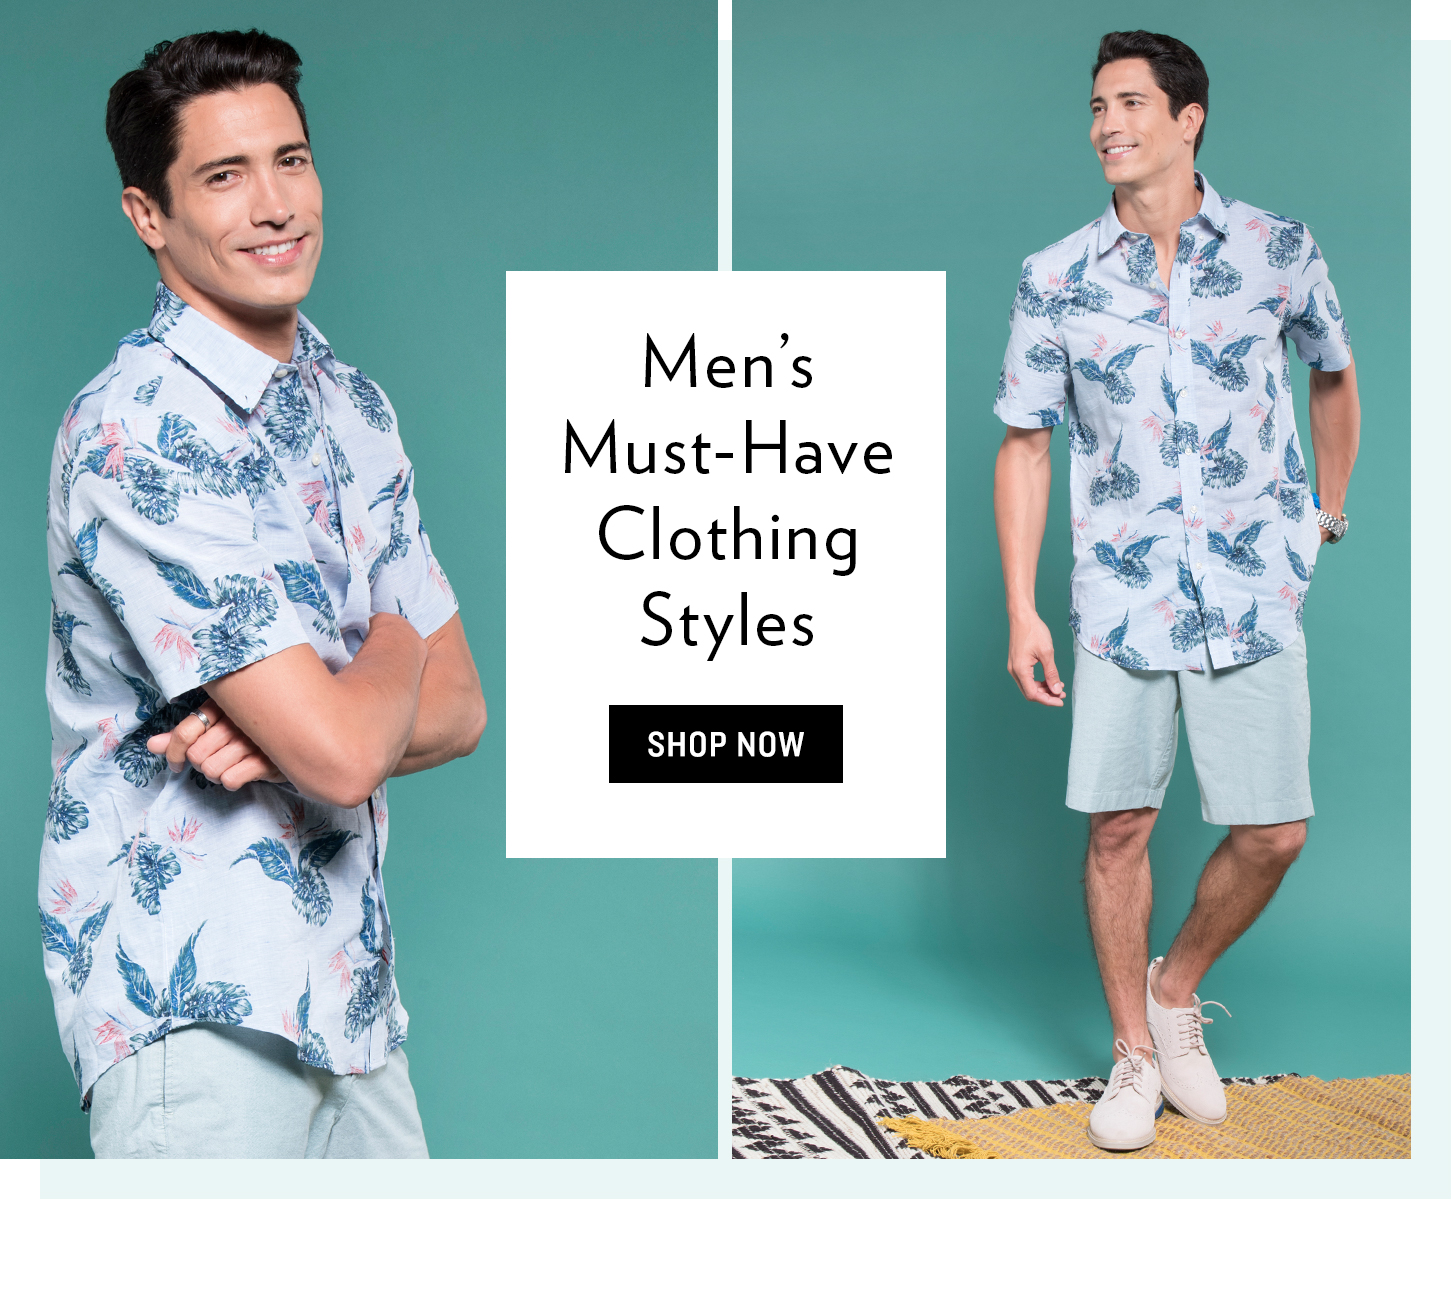 Shop Men's Must-Have Clothing Styles